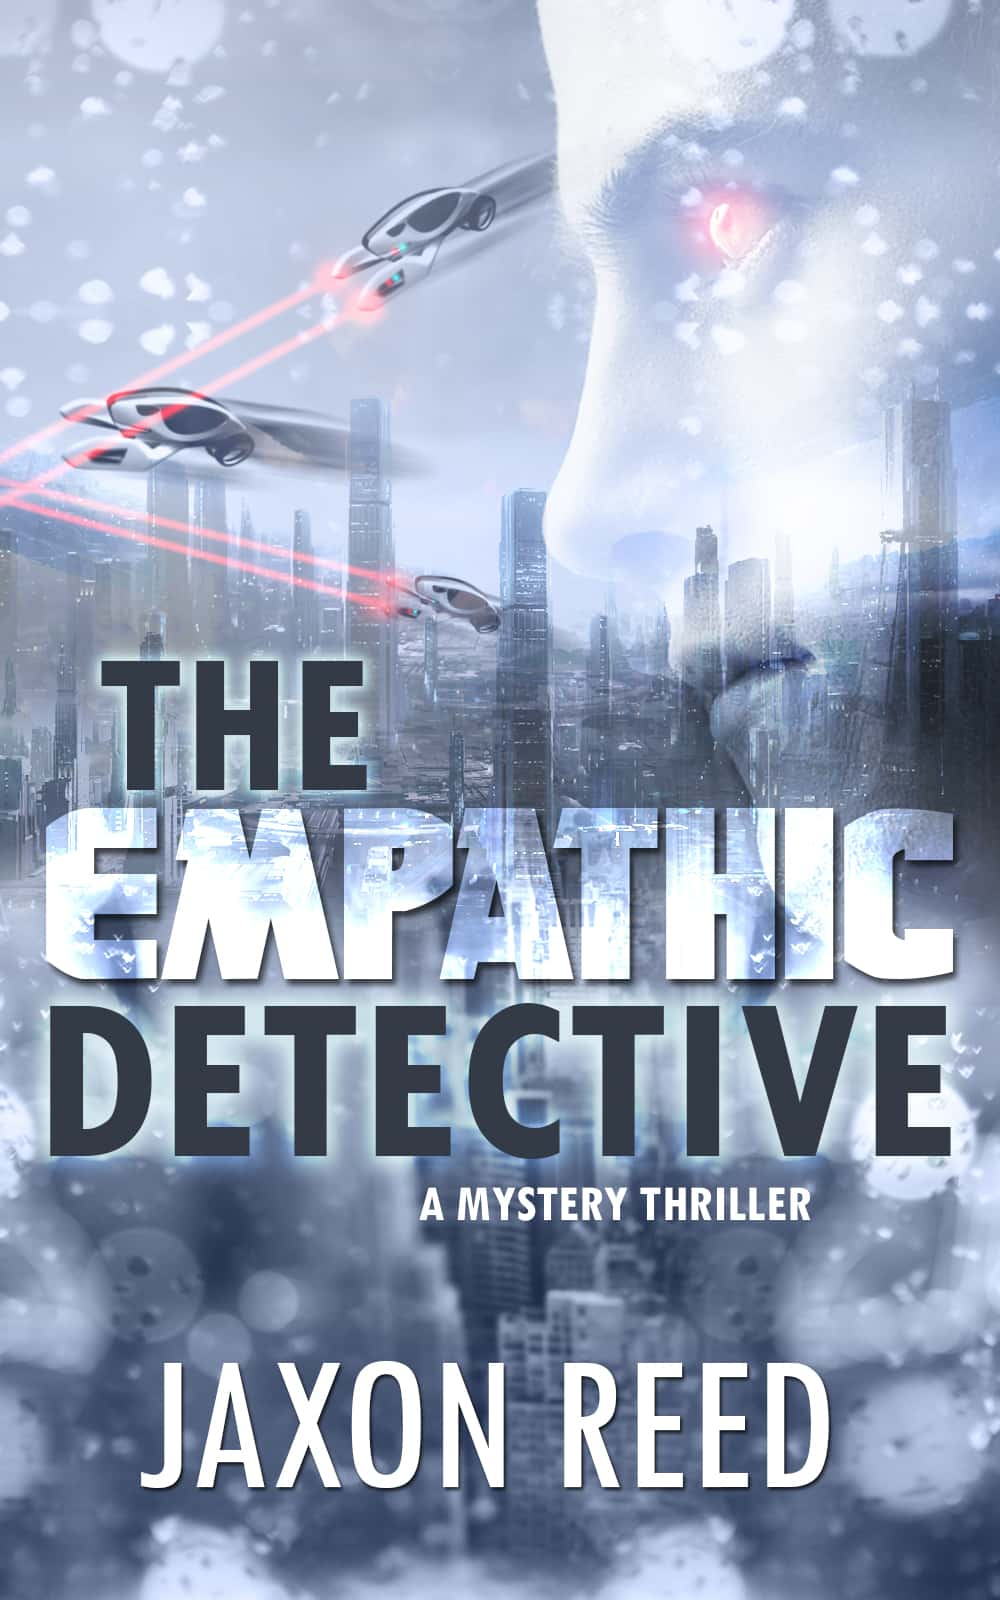 The Empathic Detective  - In a world of flying cars and planetary portals, Detective Gerald Bryce holds a rare power: the ability to read emotions. When he discovers a suspected murderess who shares his gift, she offers the fulfillment of his deepest desires. Soon he discovers she can manipulate emotions too, controlling others even to the point of committing murder. A battle breaks out between police and all the forces she can bring to bear. But other powers are at play as well, and they are far greater than anyone imagined …